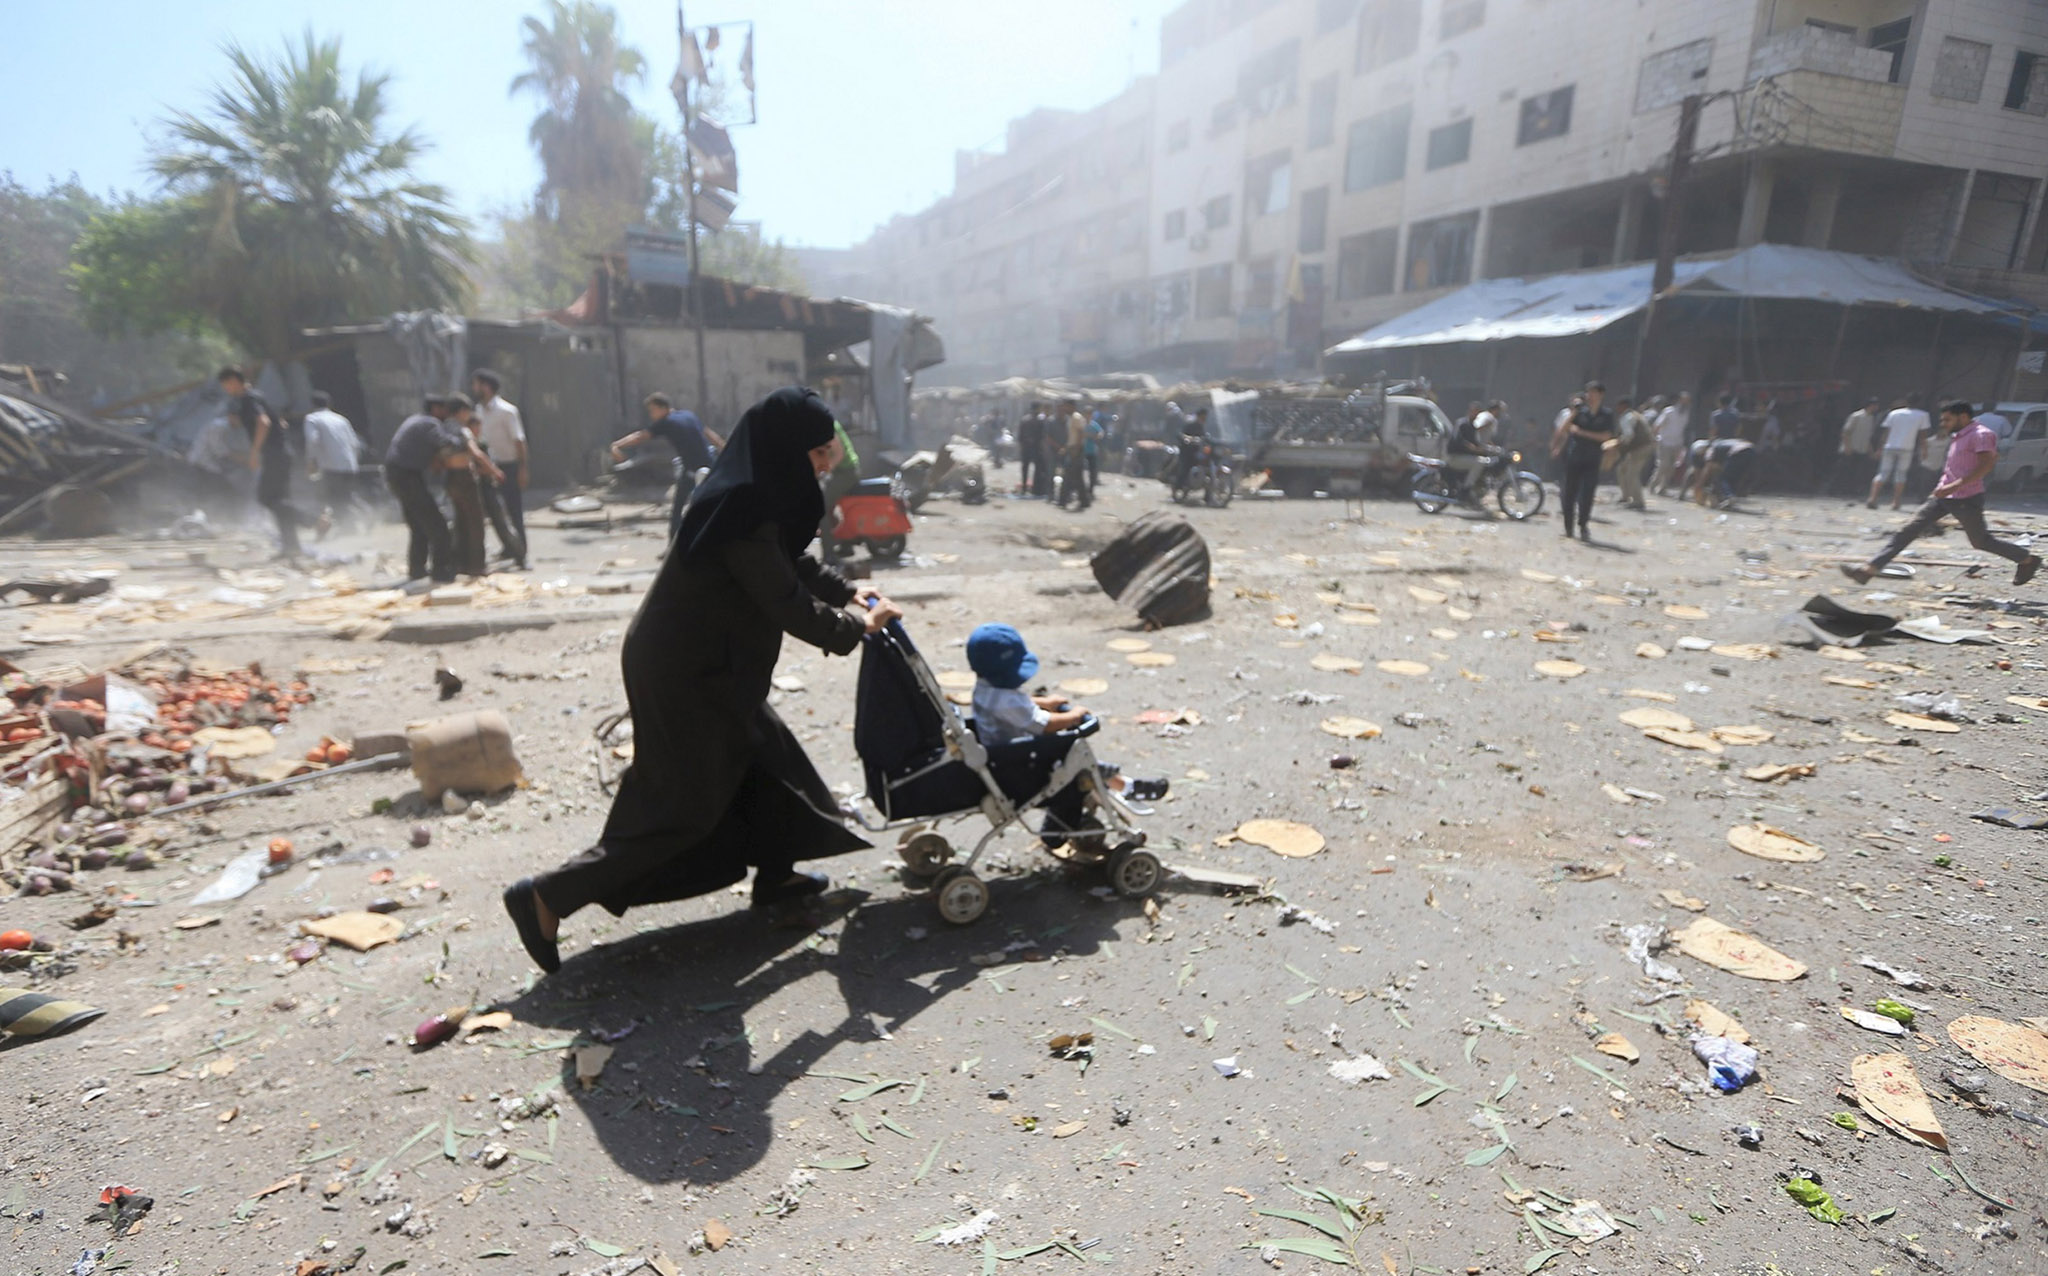 A woman pushes a baby stroller as she rushes away after what activists said were airstrikes by forces loyal to Syria's President Bashar al-Assad on a busy marketplace in the Douma neighborhood of Damascus, Syria...A woman pushes a baby stroller as she rushes away after what activists said were airstrikes by forces loyal to Syria's President Bashar al-Assad on a busy marketplace in the Douma neighborhood of Damascus, Syria August 12, 2015. Syrian government air strikes on rebel-held areas near Damascus killed at least 31 people on Wednesday, and insurgents bombarded the capital with rockets that killed at least 13 people, the Syrian Observatory for Human Rights reported. REUTERS/Bassam Khabieh   NO ARCHIVES